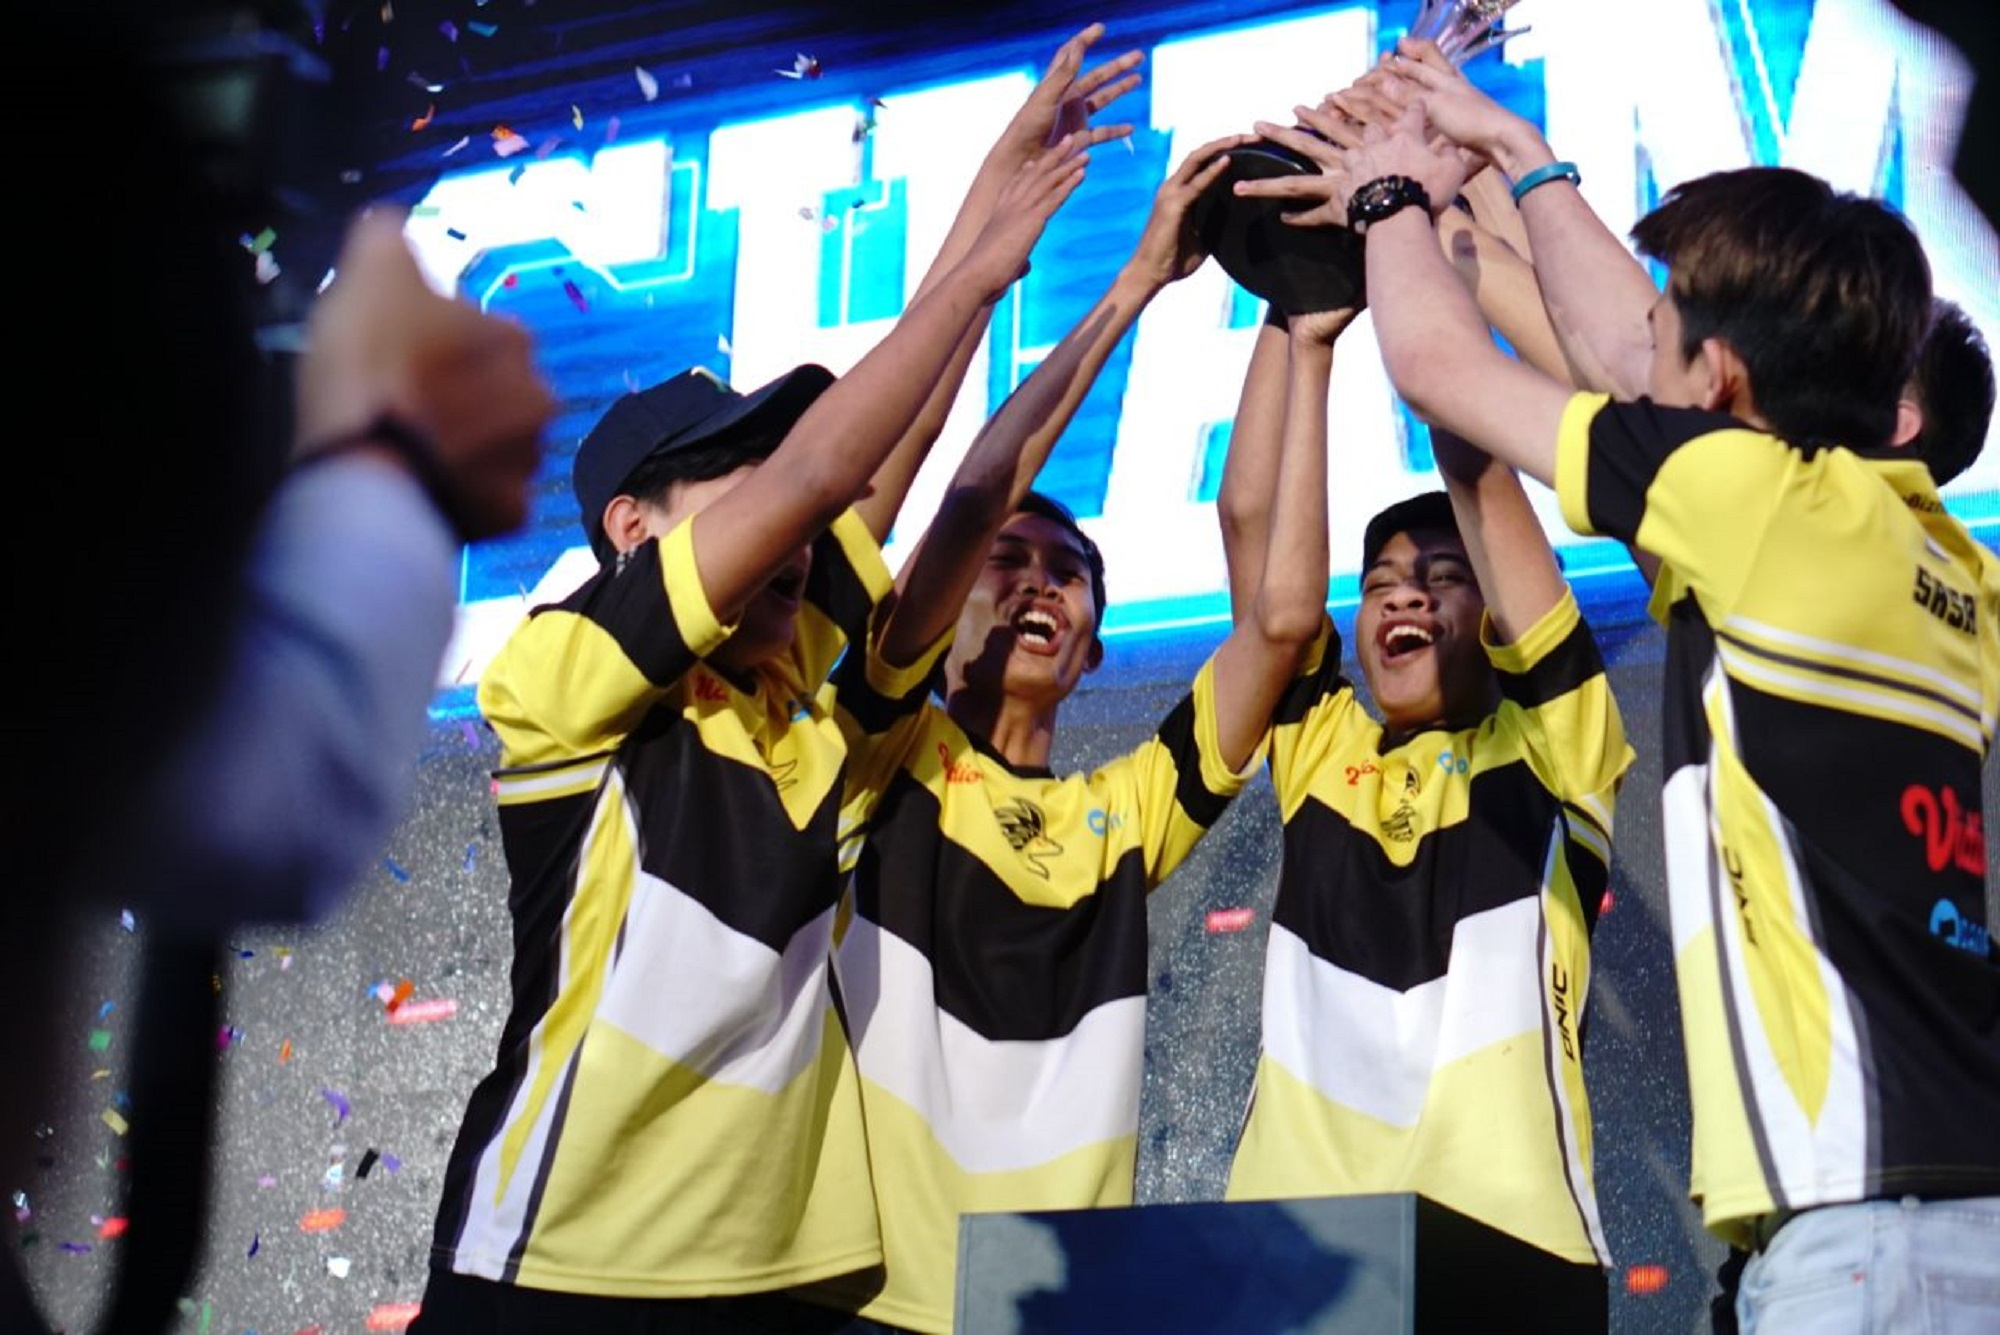 Dunia Games League & Dunia Games Campus League-1: ONIC ESport Juara pertama Dunia Games League yang mempertandingkan game Mobile Legends Bang Bang saat pengumuman juara yang berkompetisi dalam grand final Dunia Games League dan Dunia Games Campus League di Jakarta. Telkomsel melalui Dunia Games mengumumkan juara yang berkompetisi dalam grand final Dunia Games League dan Dunia Games Campus League di Dunia Games Esport Stadium, Jakarta.